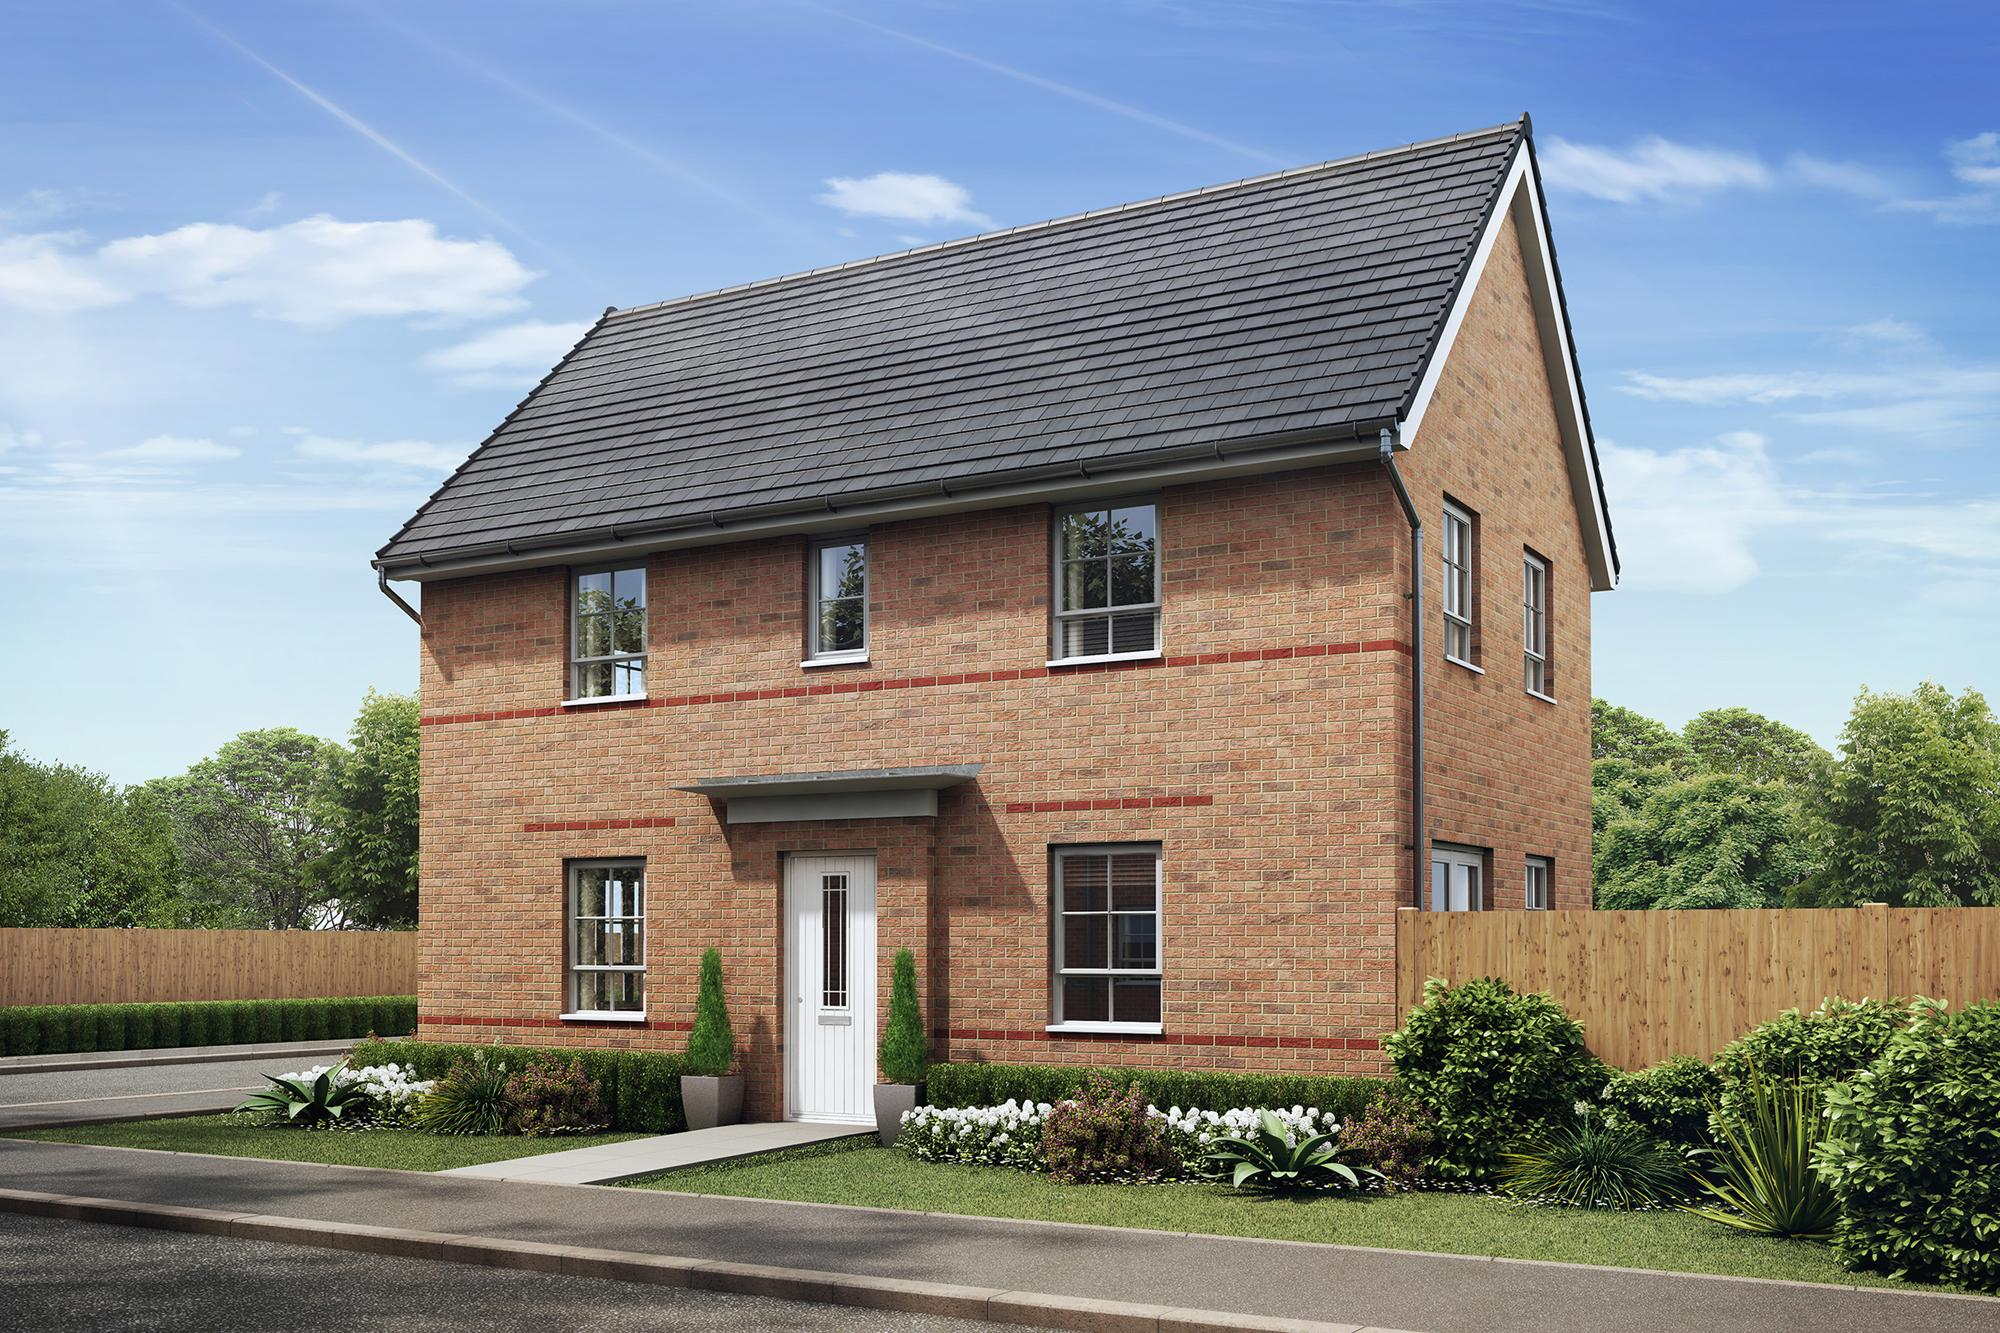 New Build Homes at Moresby in in WINSFORD